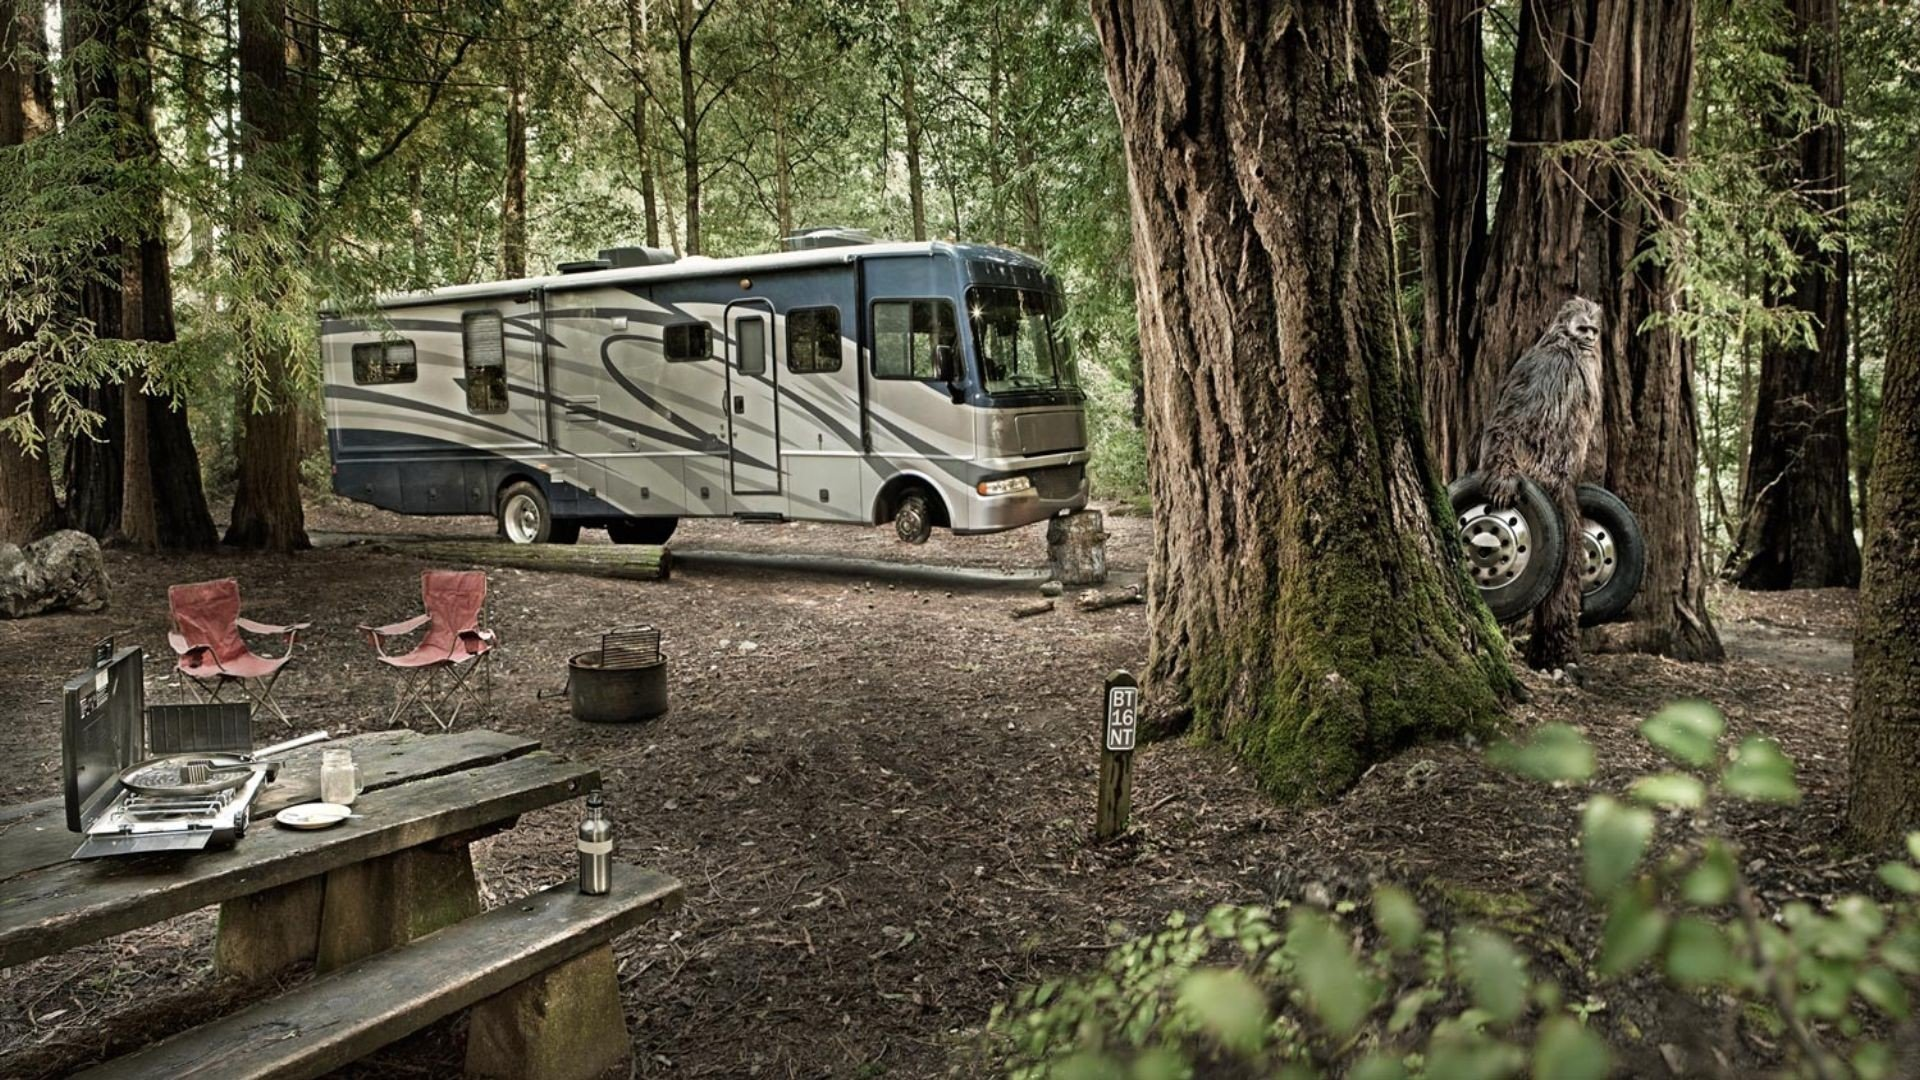 Humor Funny Motorhome Camper Creature Fantasy Forest HD Wallpapers Download Free Images Wallpaper [1000image.com]